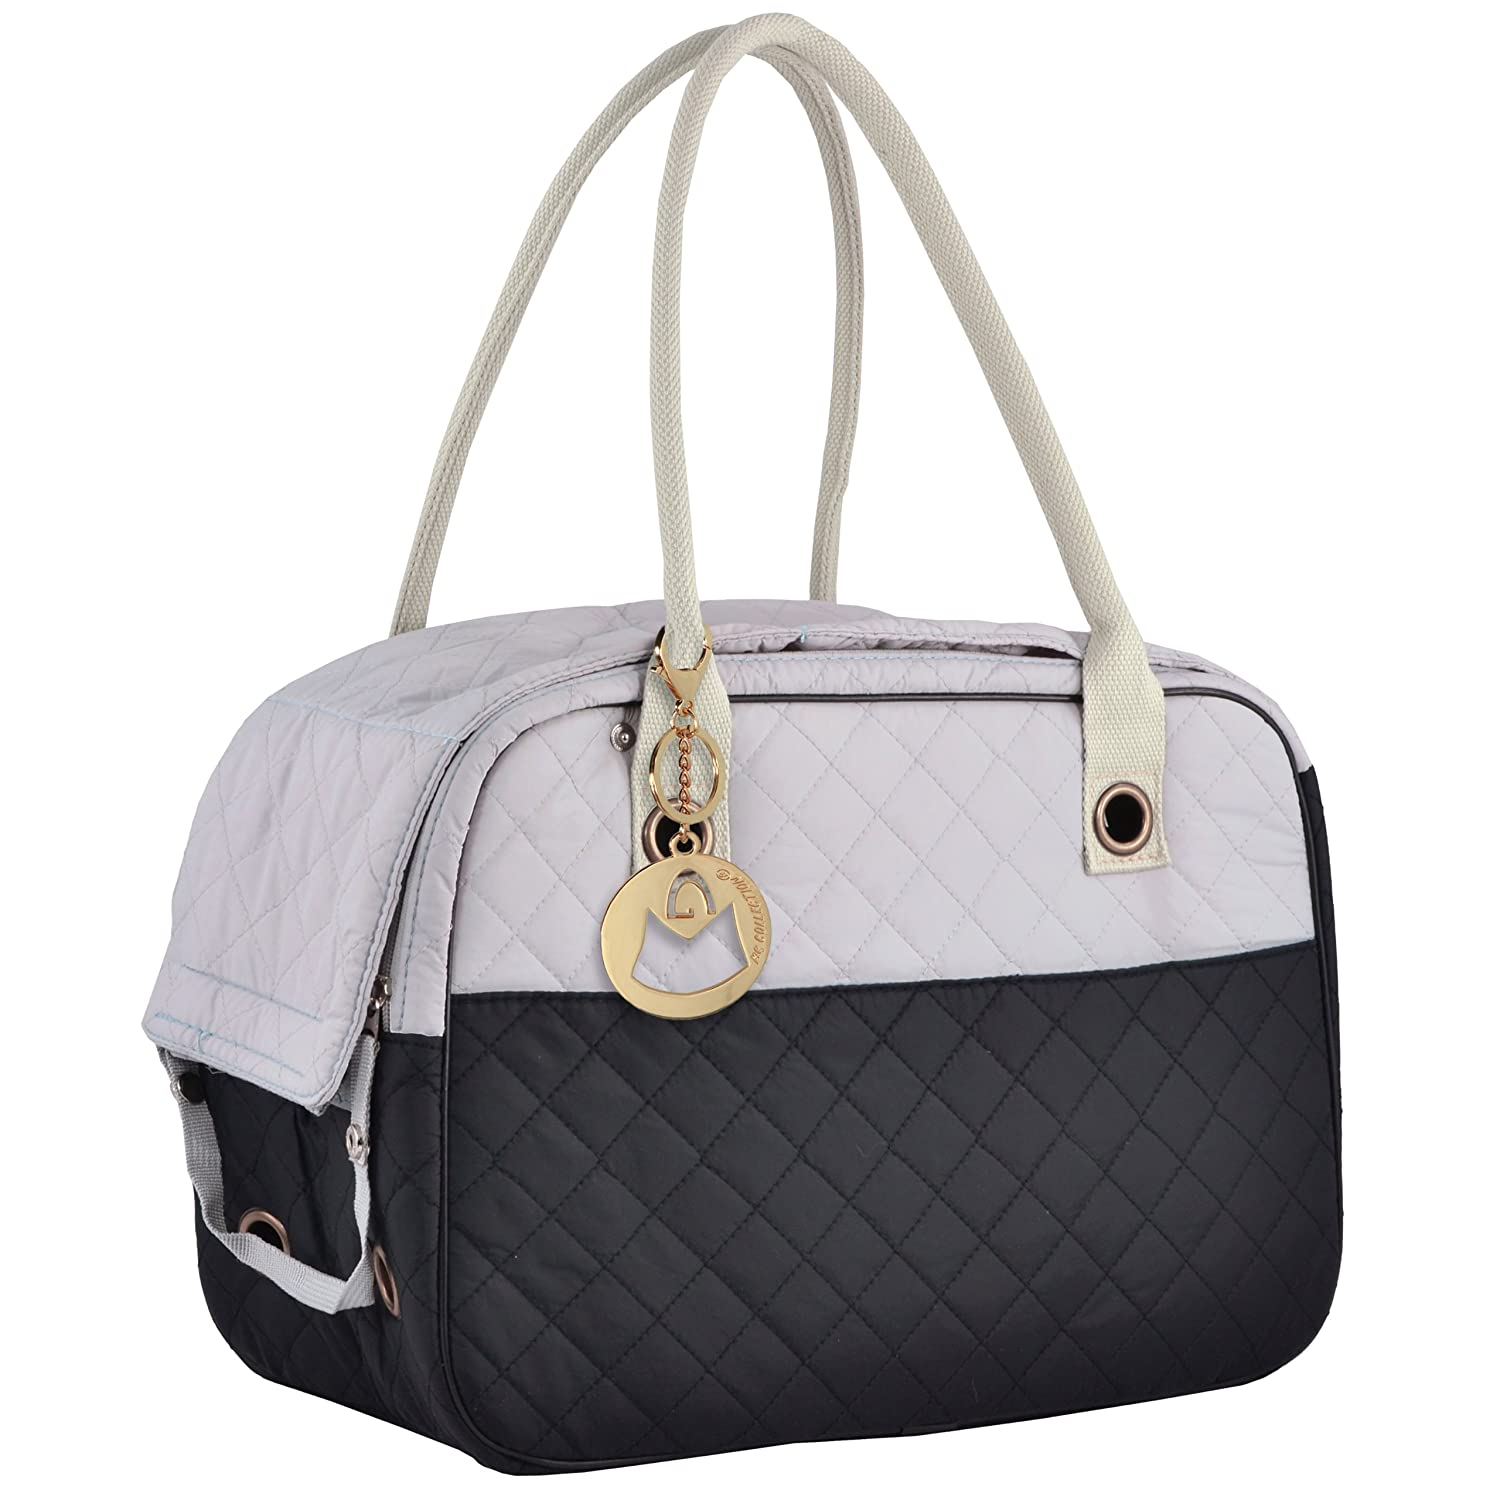 MG Collection Designer Pet Handbag